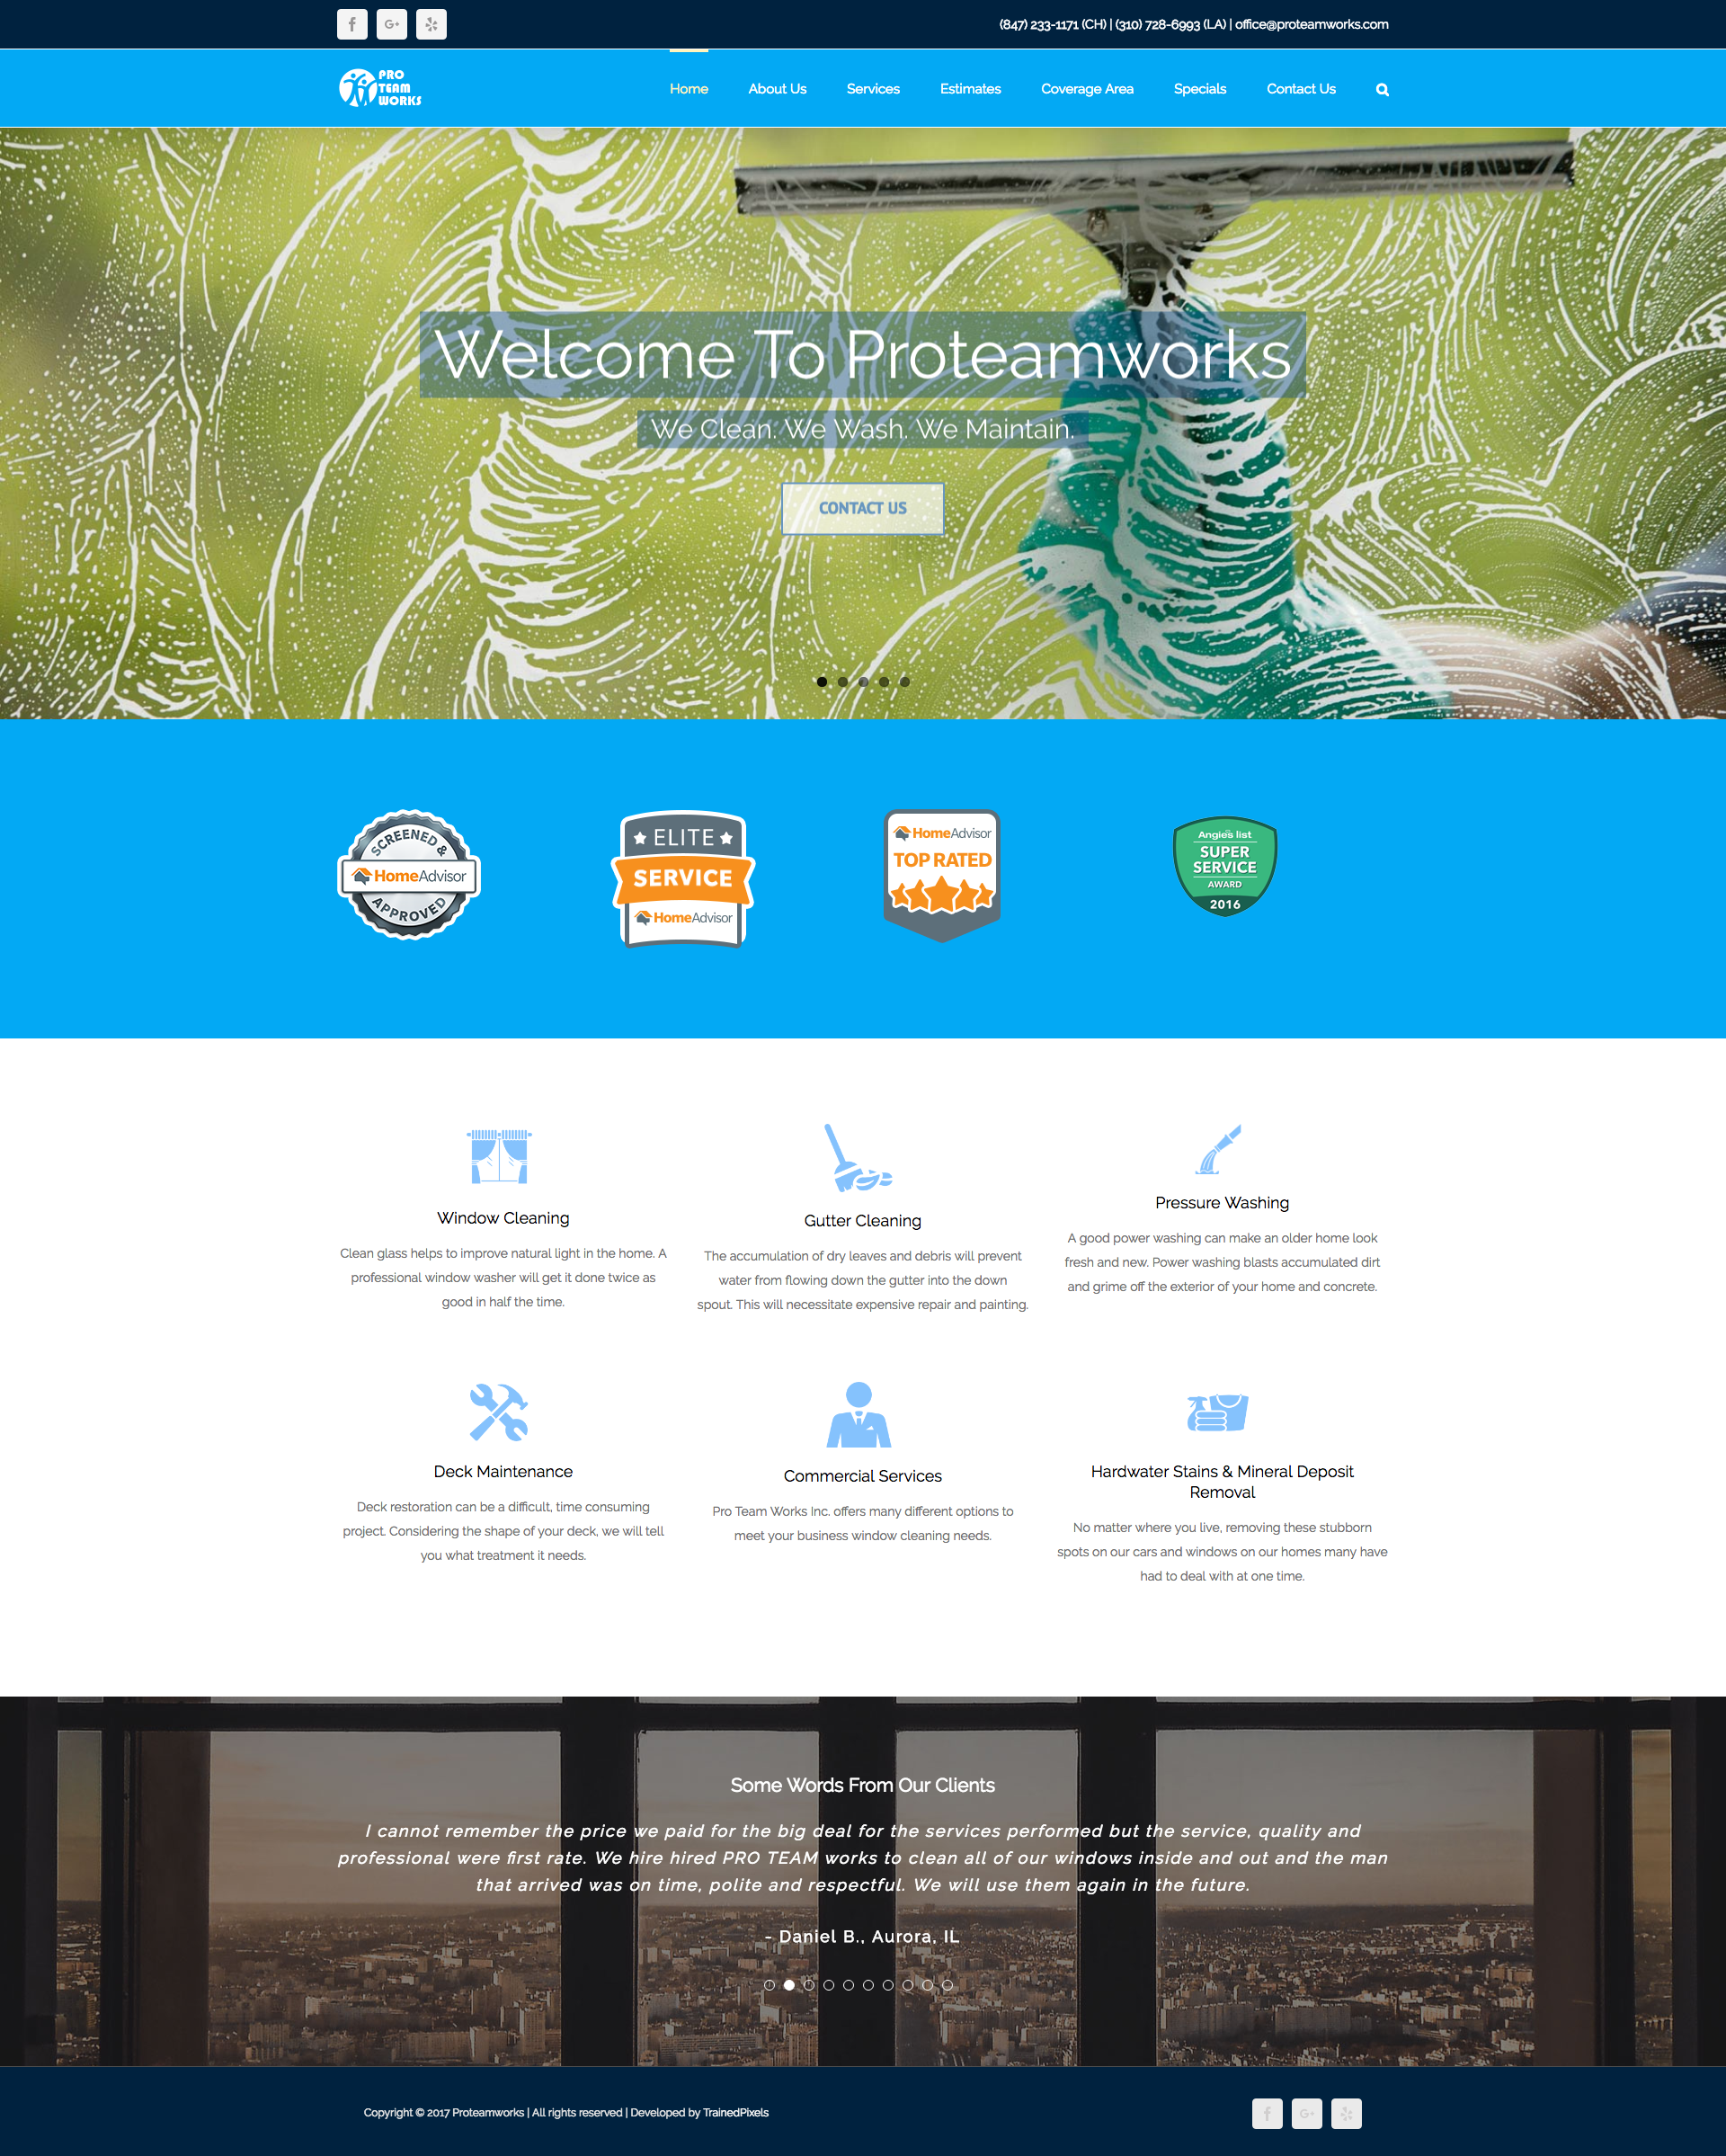 Proteamworks a cleaning business website design